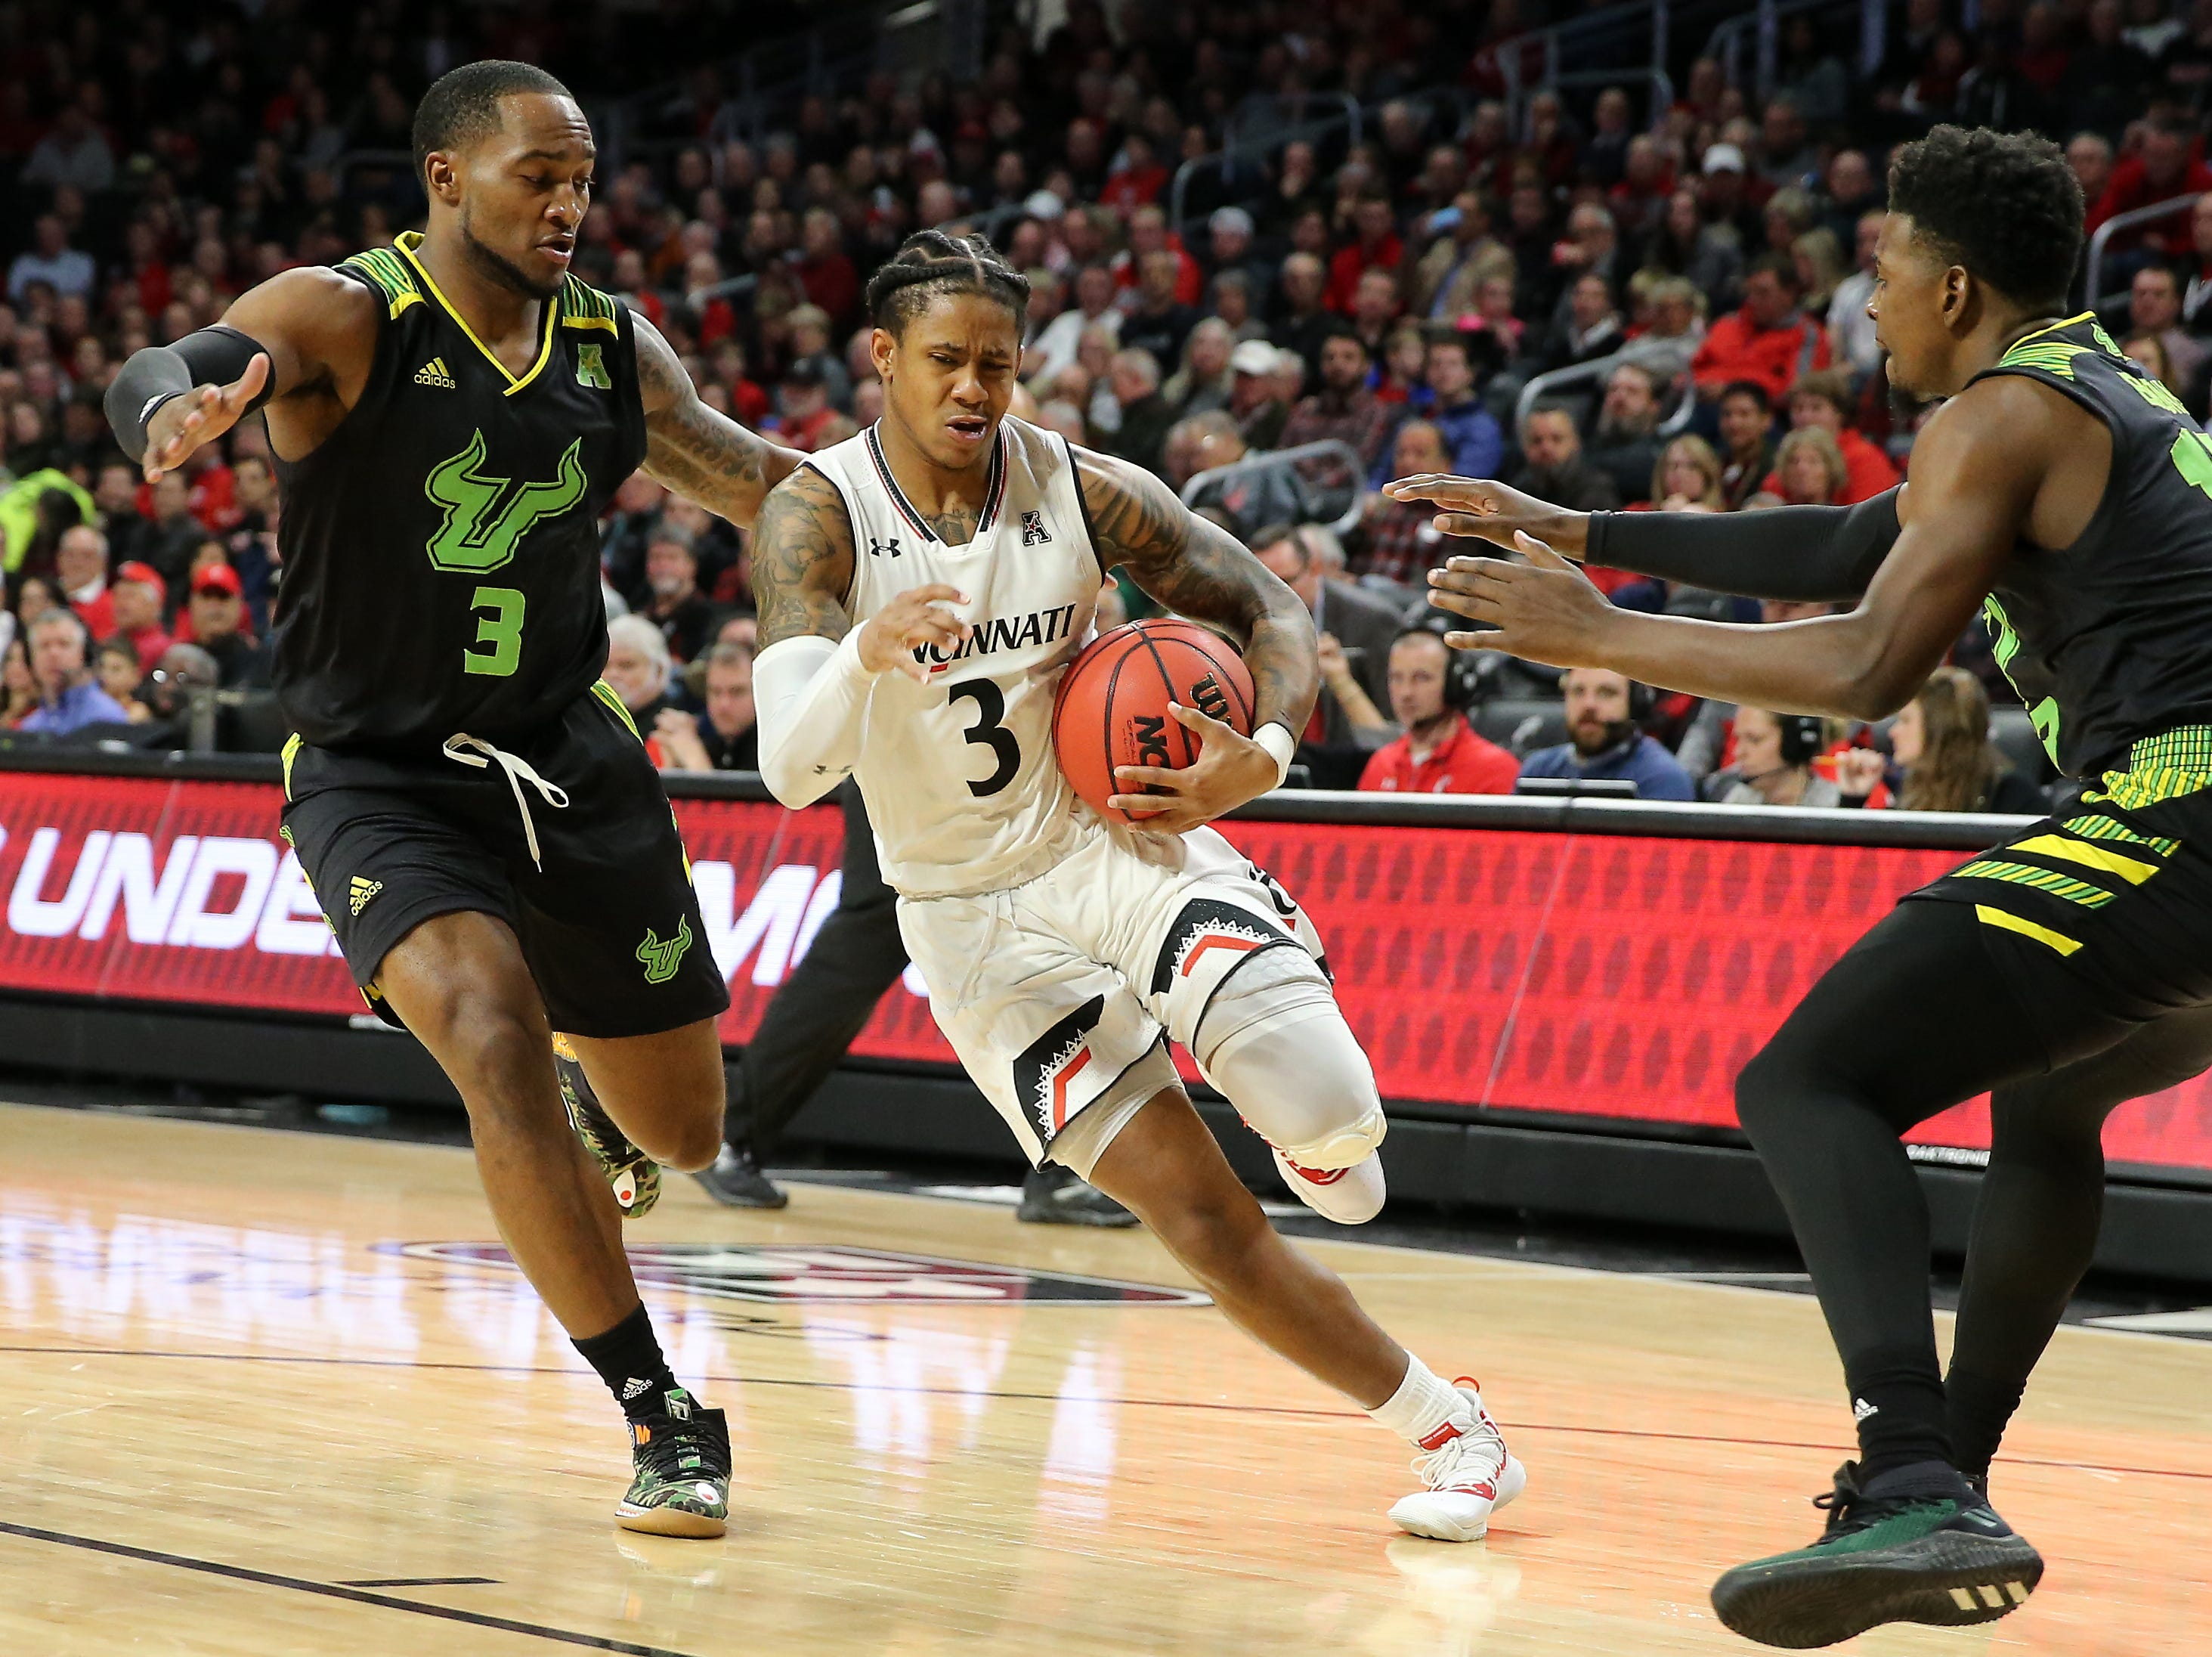 Cincinnati Bearcats guard Justin Jenifer (3) drives to the basket as South Florida Bulls guard LaQuincy Rideau (3) defends in the first half of an NCAA college basketball game, Tuesday, Jan. 15, 2019, at Fifth Third Arena in Cincinnati.